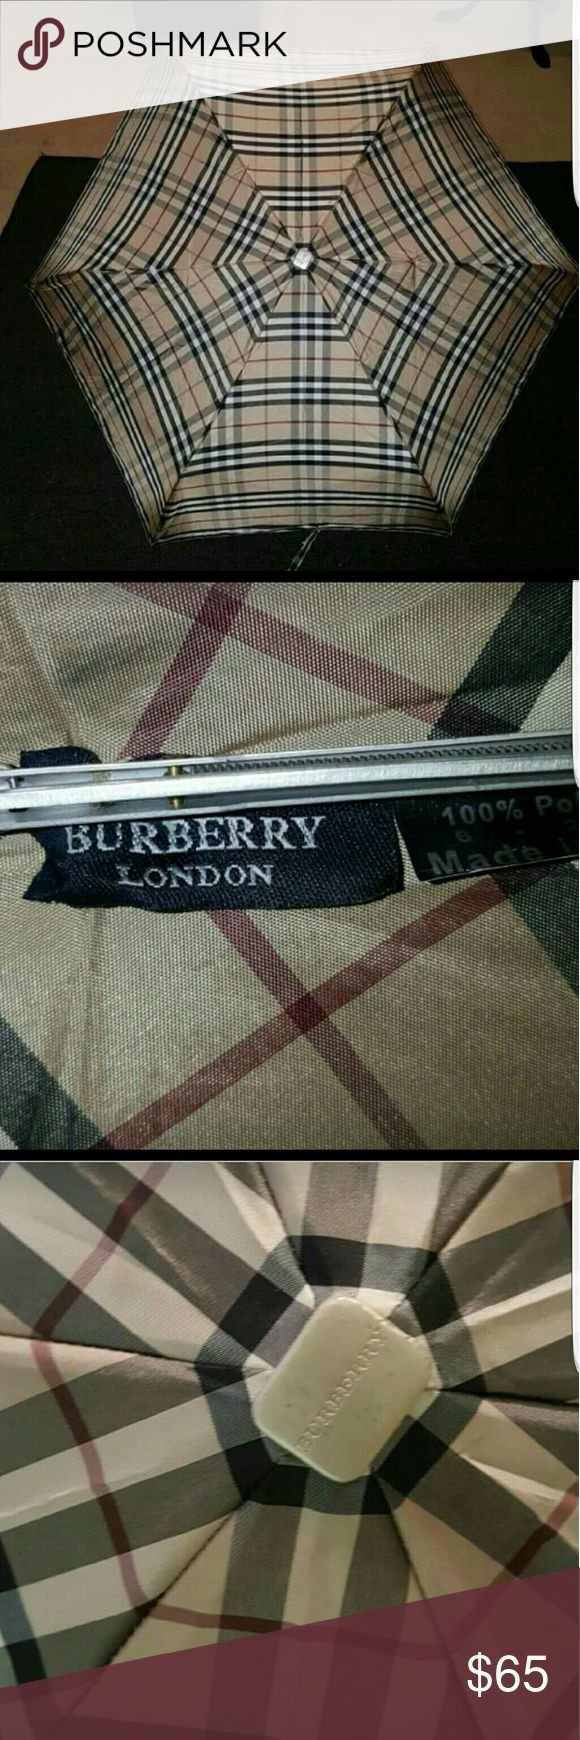 """Burberry Trafalgar Check Small Umbrella Good Condition   Handle shows some wear   Authentic   Good Condition   No Sleeve/Case  Shows wear on handle  Push Button Open   Small enough to fit in handbag (packable)  Appox. 38"""" diameter when open Burberry Accessories Umbrellas"""